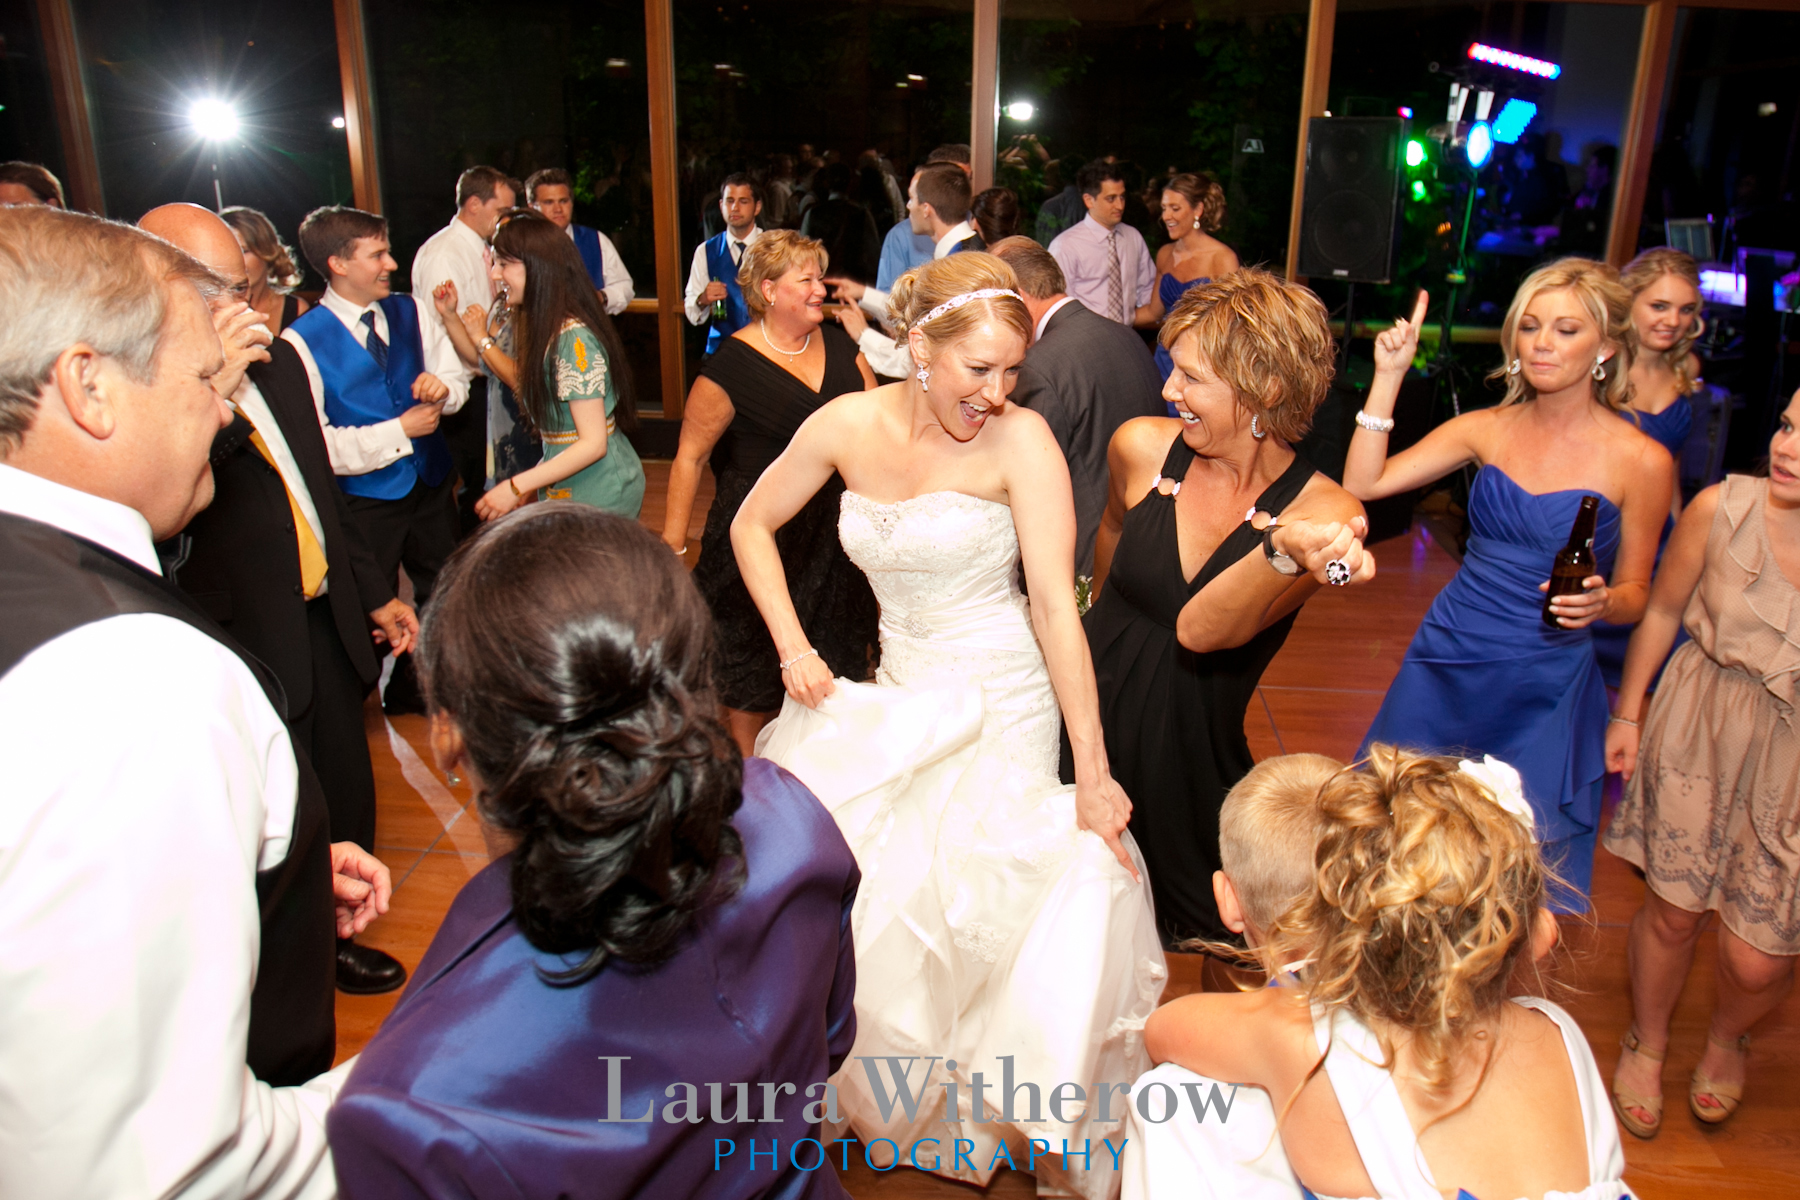 hyatt-lodge-chicago-wedding-images.jpg